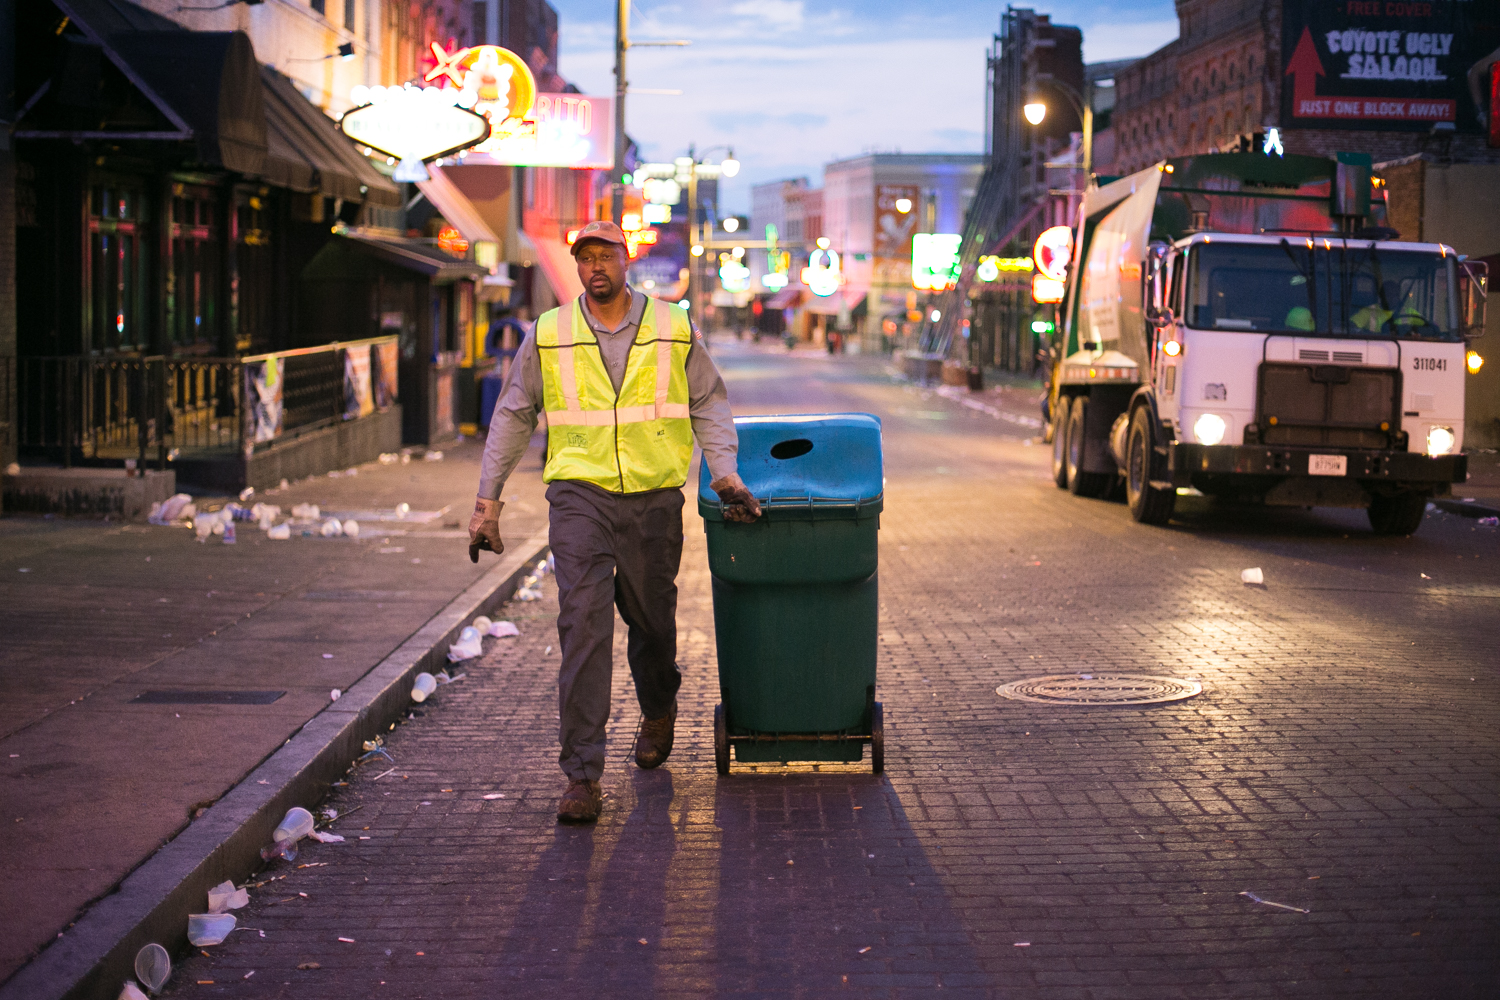 While most people are asleep in their beds, six-seven big Kevin is just finishing his clean sweep on Beale Street. He and his co-worker empty every last trash can that lines the Memphis party strip.